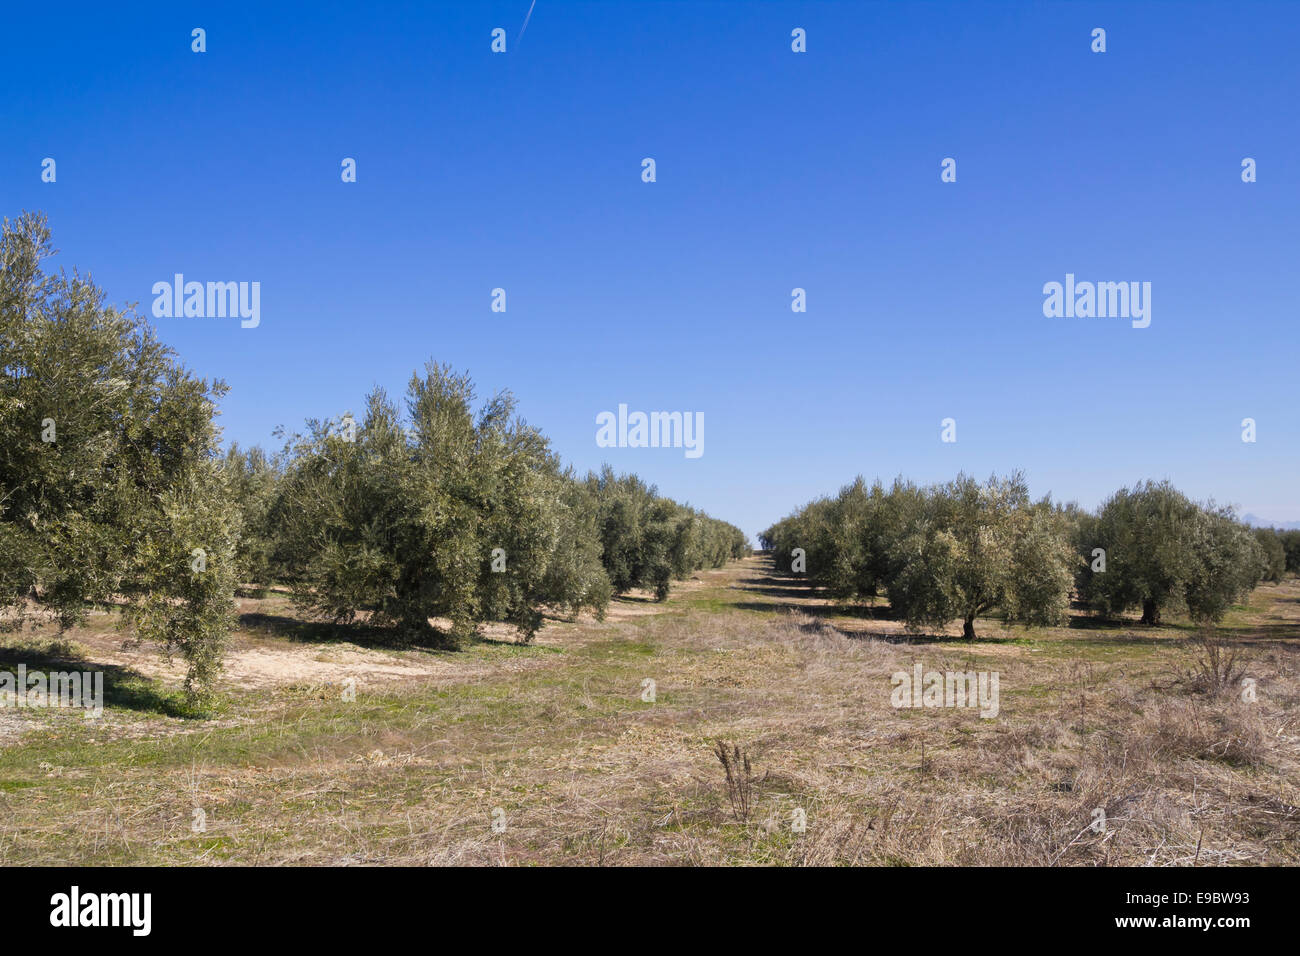 an olive grove in Sevilla. Andalusia zone, Spain. - Stock Image